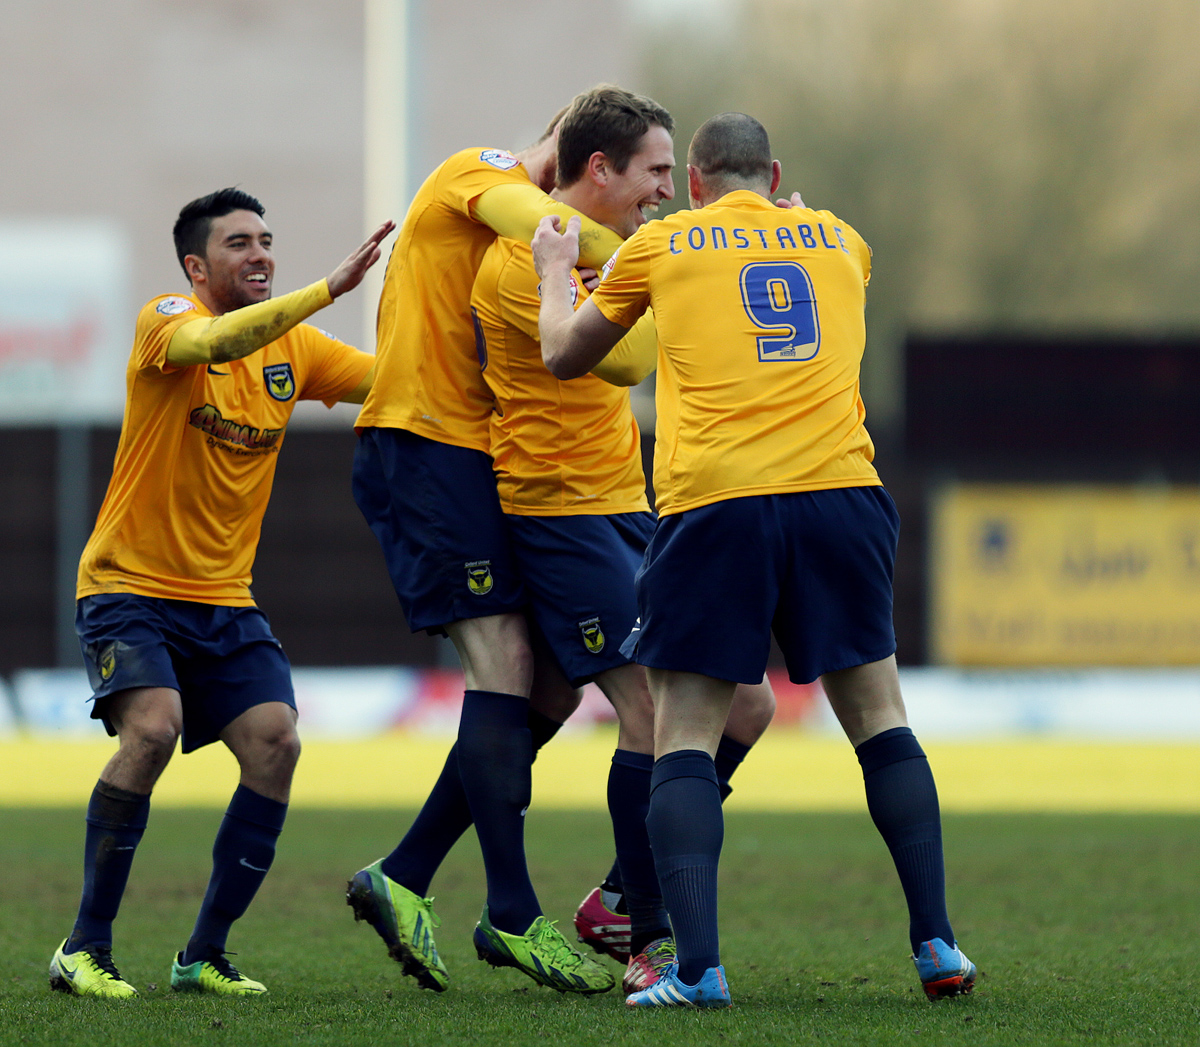 Oxford Utd 3, Mansfield Town 0 + match highlights video